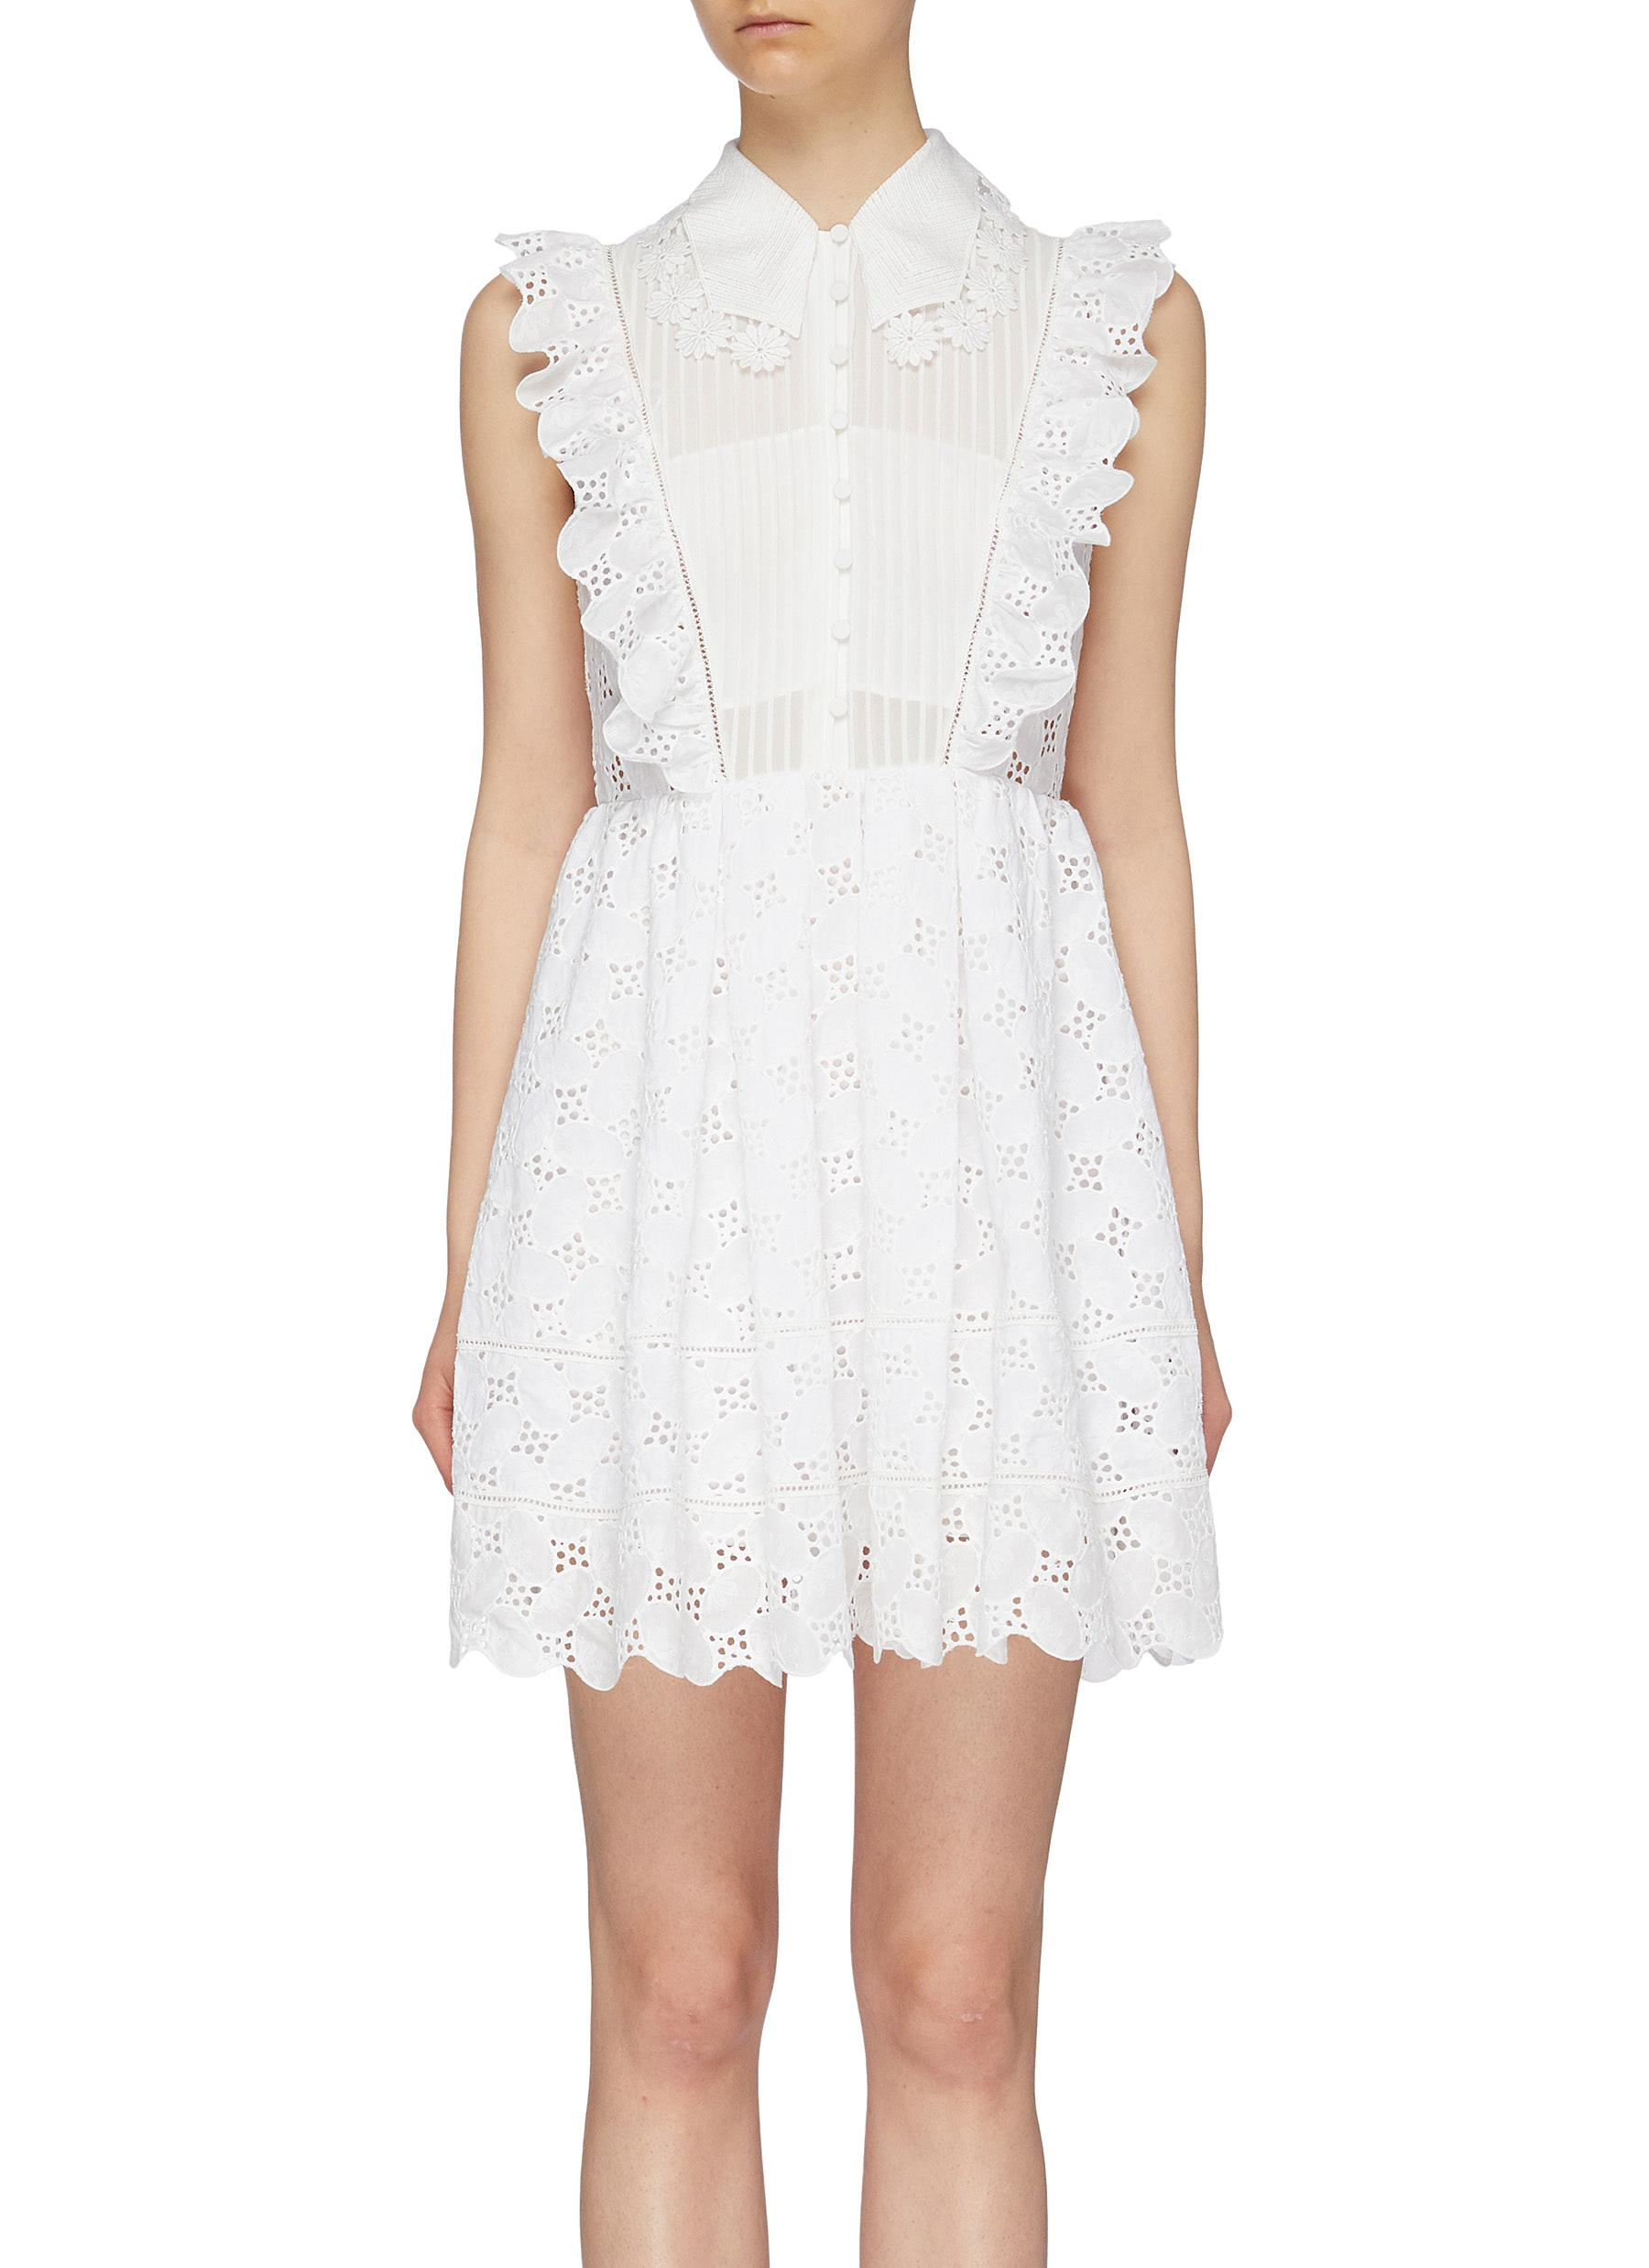 Pleated bib ruffle leaf broderie anglaise mini dress by Self-Portrait